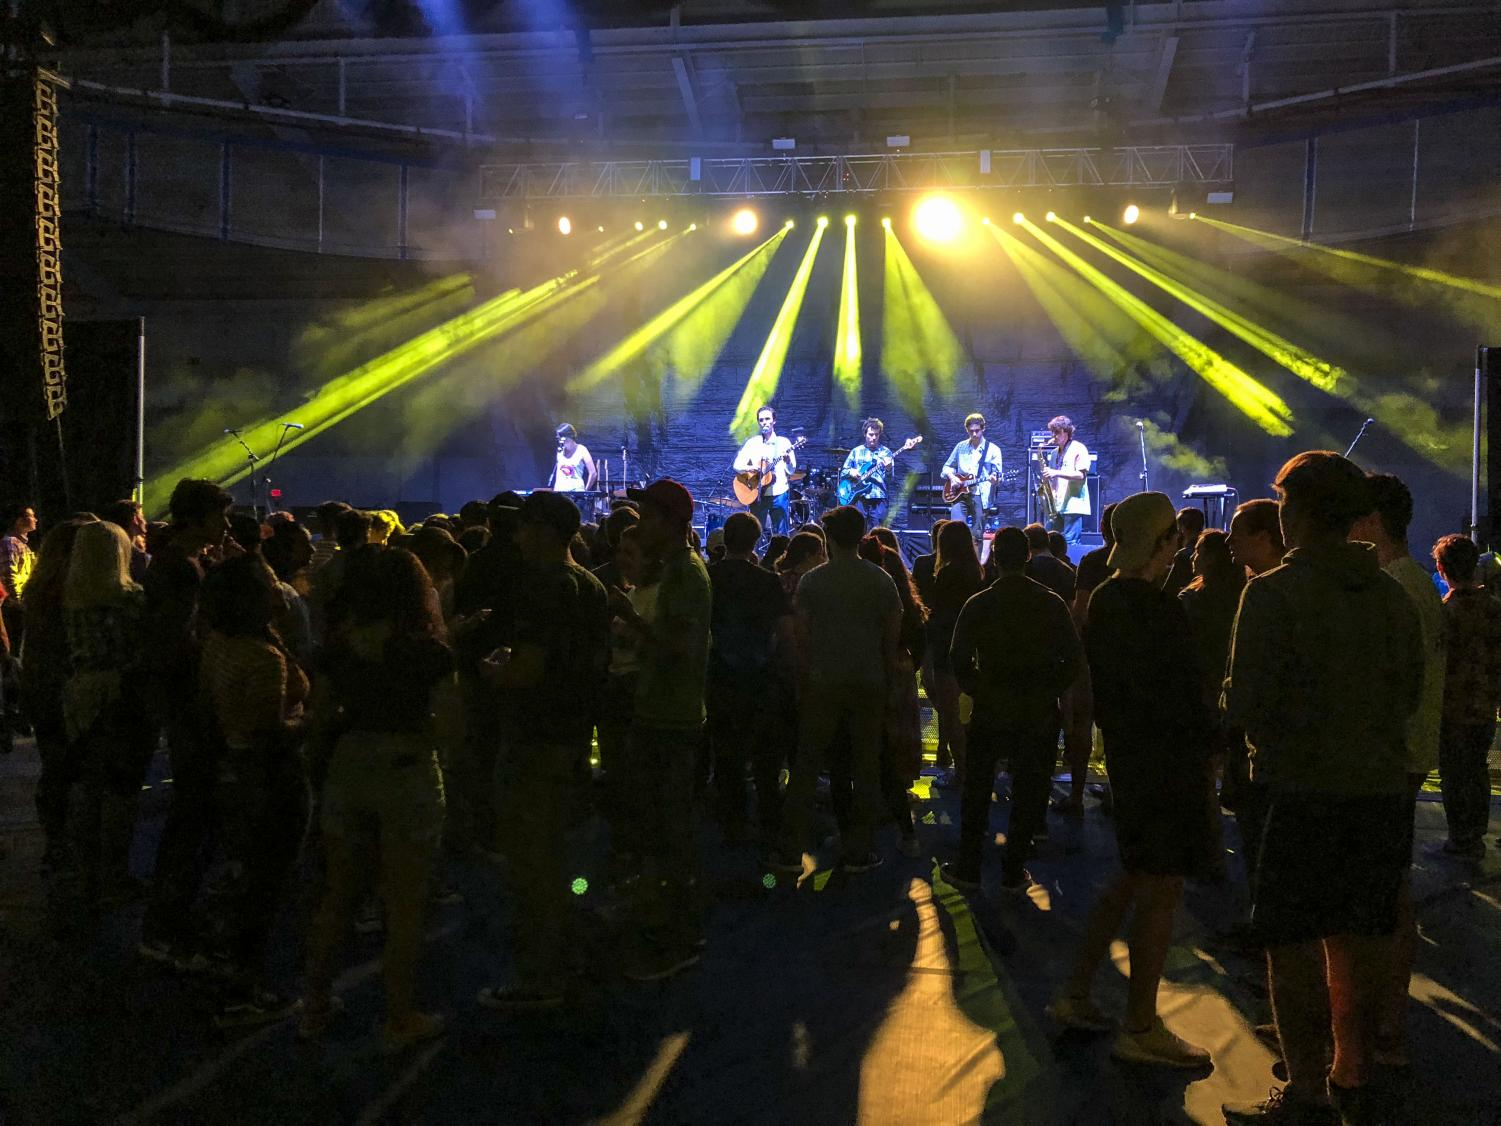 CWRU students enjoyed the Fall Concert on Saturday, Sept. 29, featuring Smallpools and Misterwives.